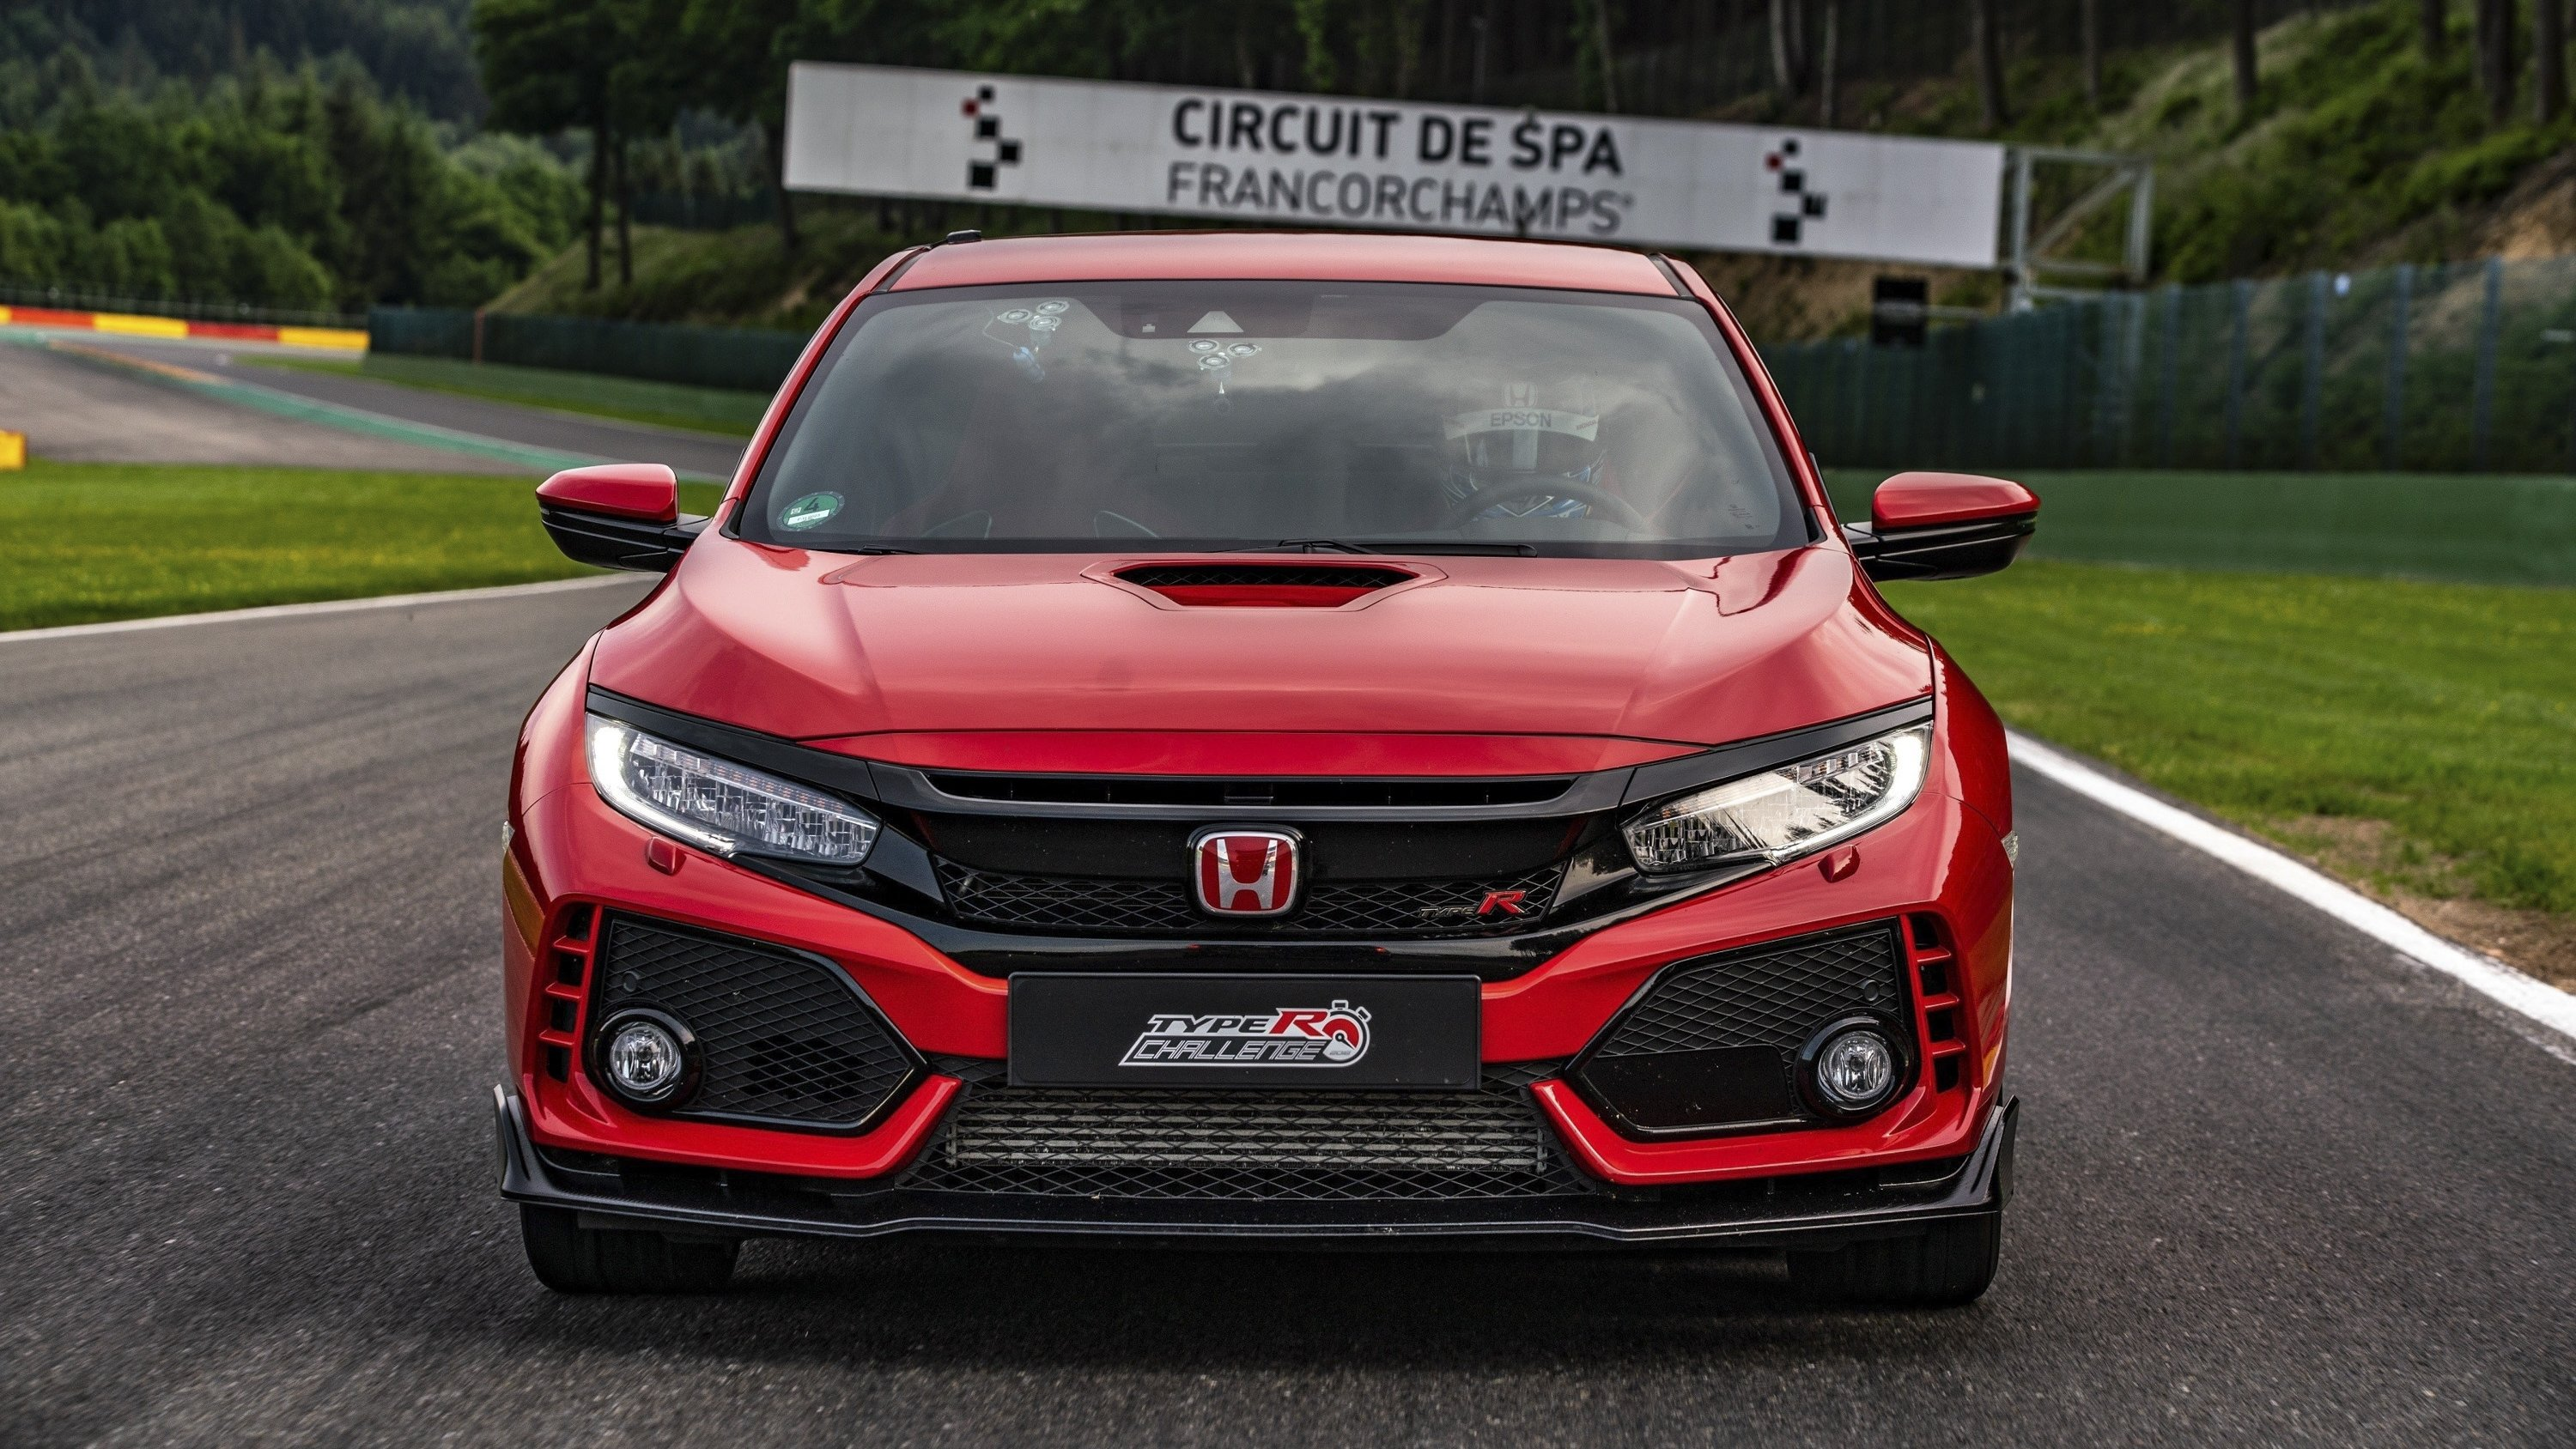 honda civic type r sets lap record at spa francorchamps top speed howldb. Black Bedroom Furniture Sets. Home Design Ideas